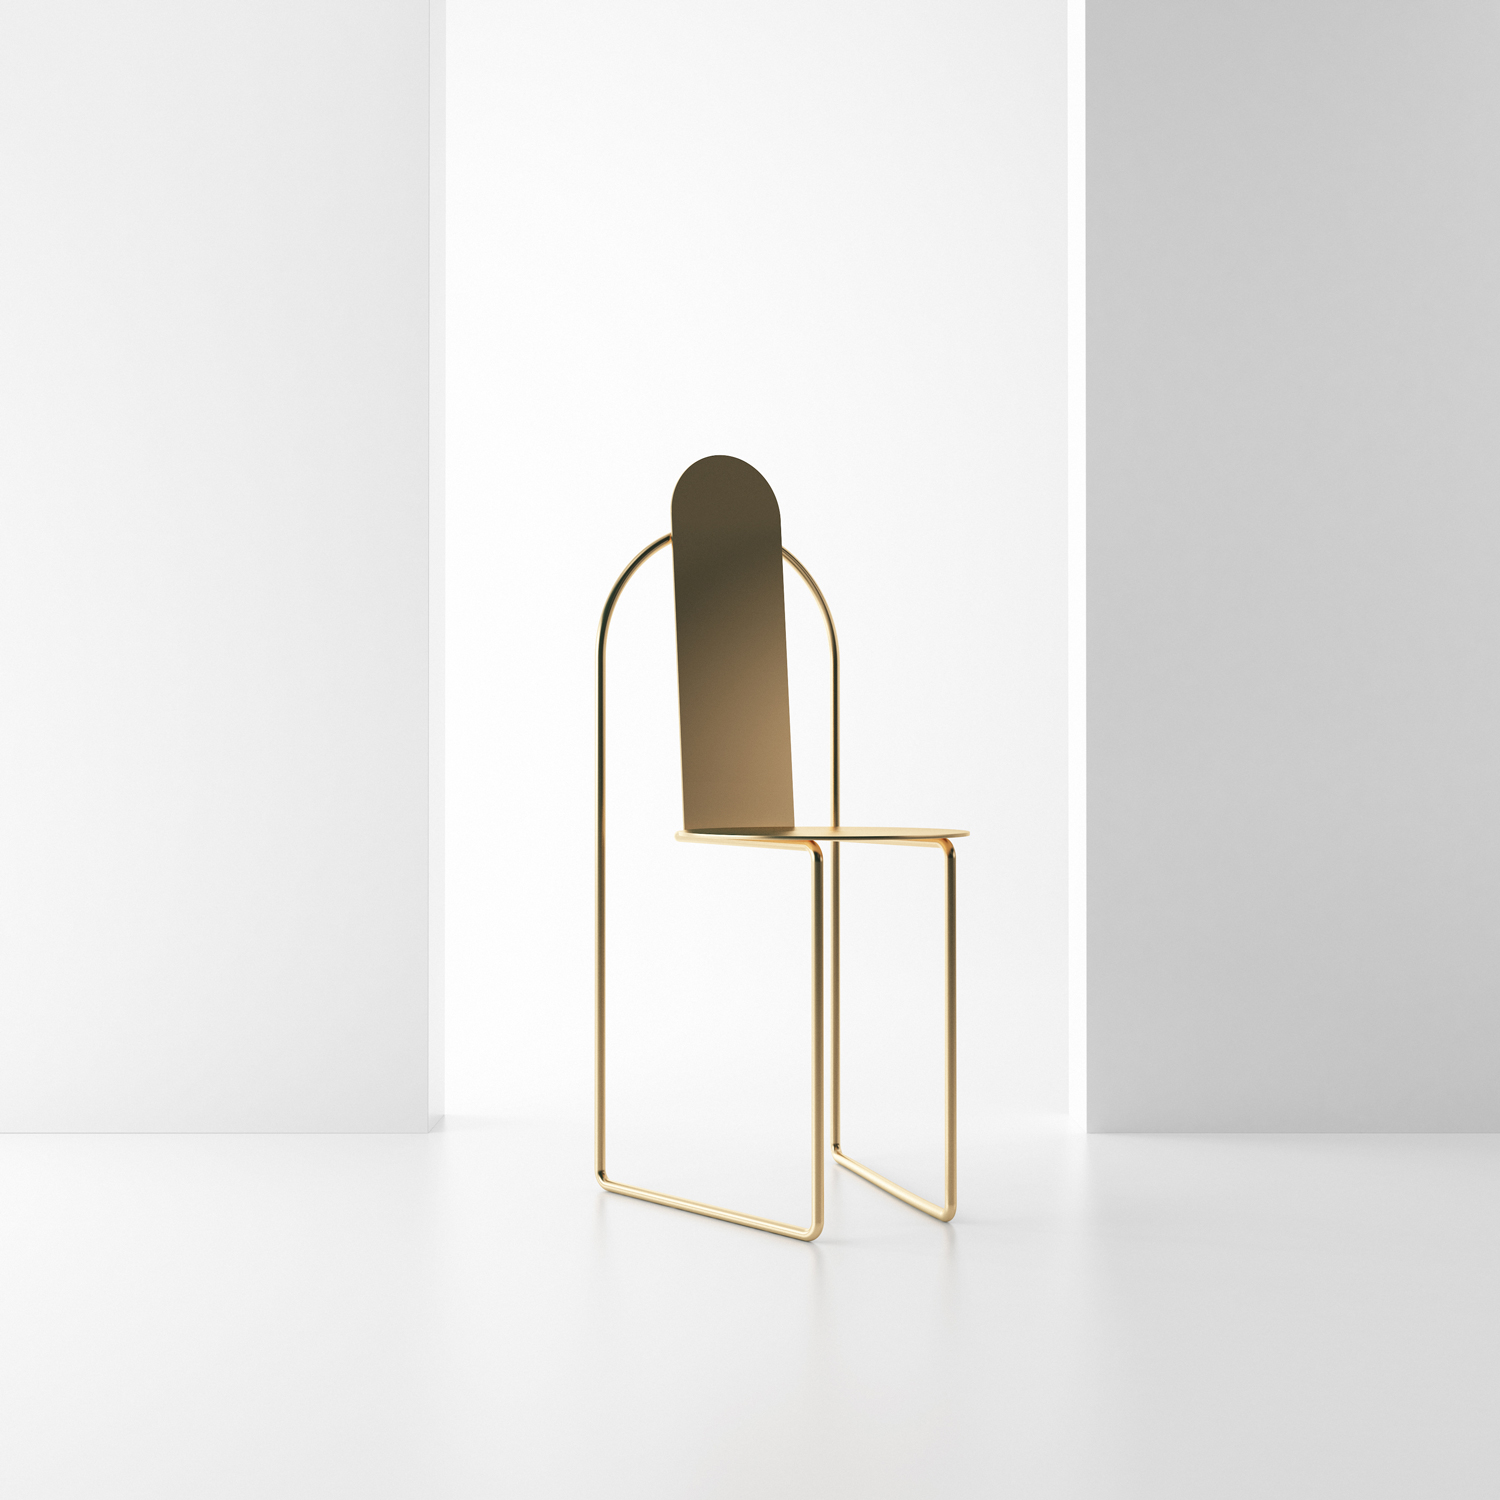 Pudica by PedPudica Chair by Pedro Paulo Venzon for Matter | Yellowtrace